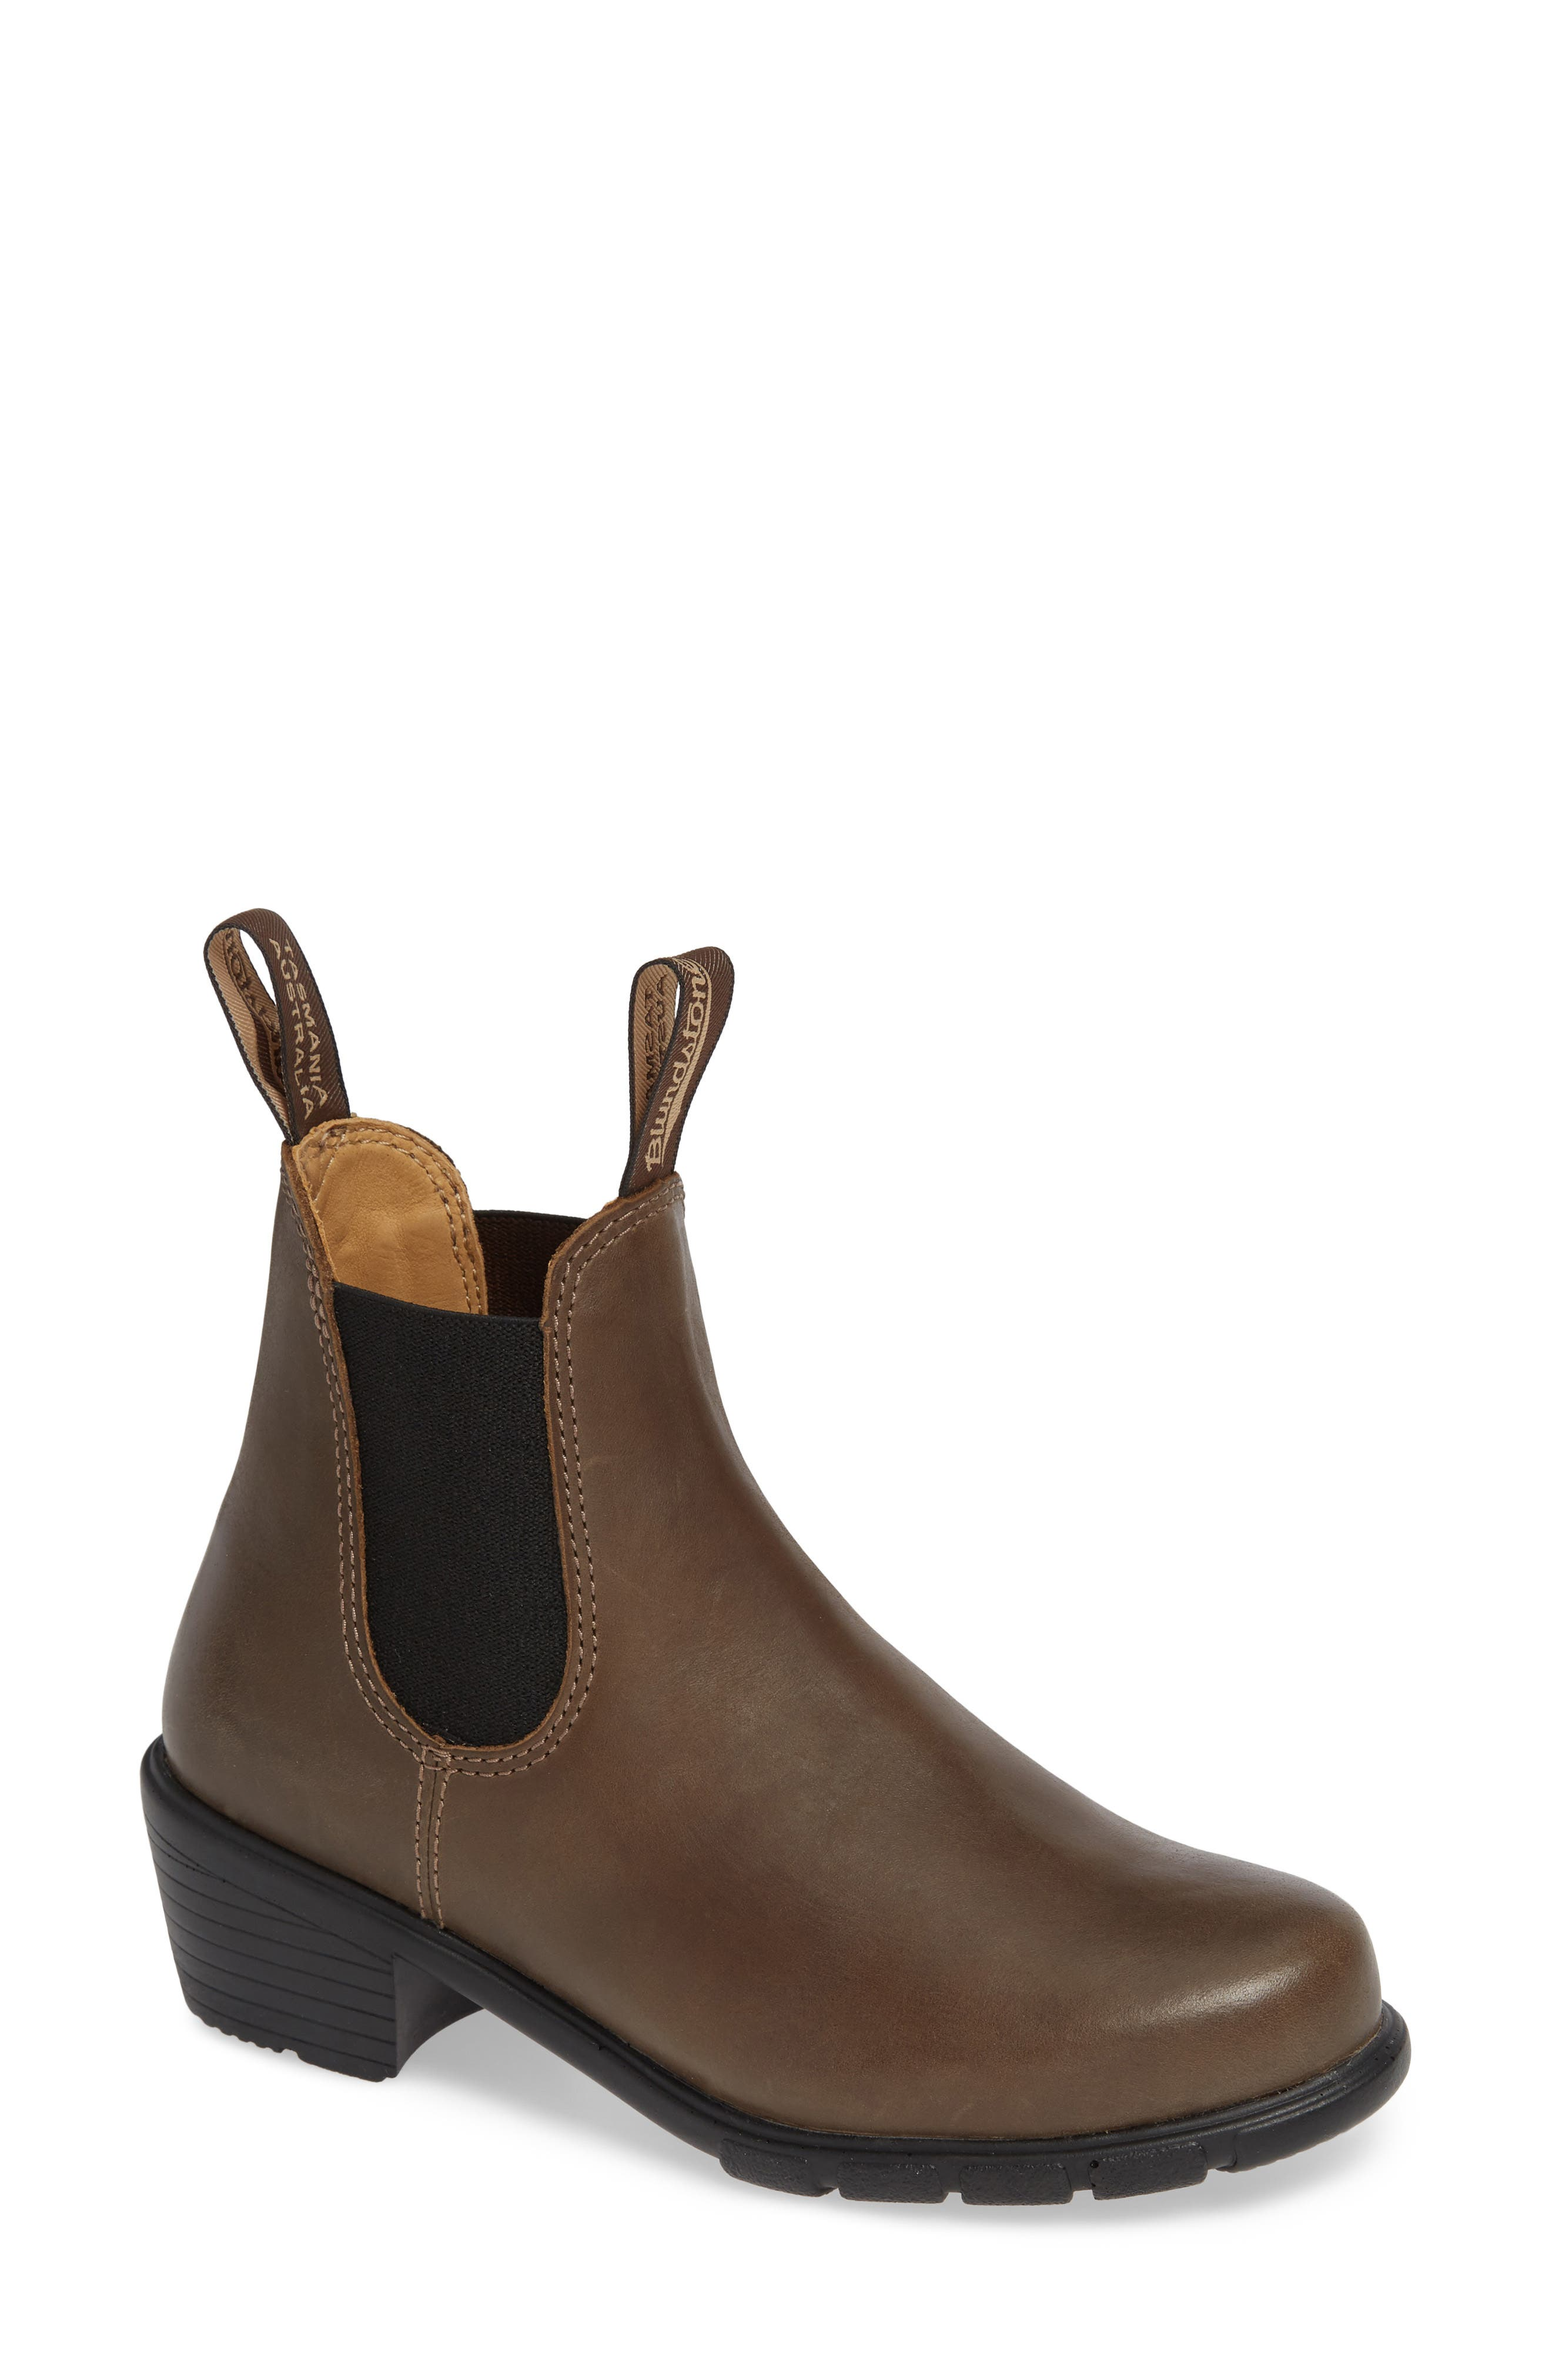 BLUNDSTONE 1671 Chelsea Boot in Antique Taupe Leather